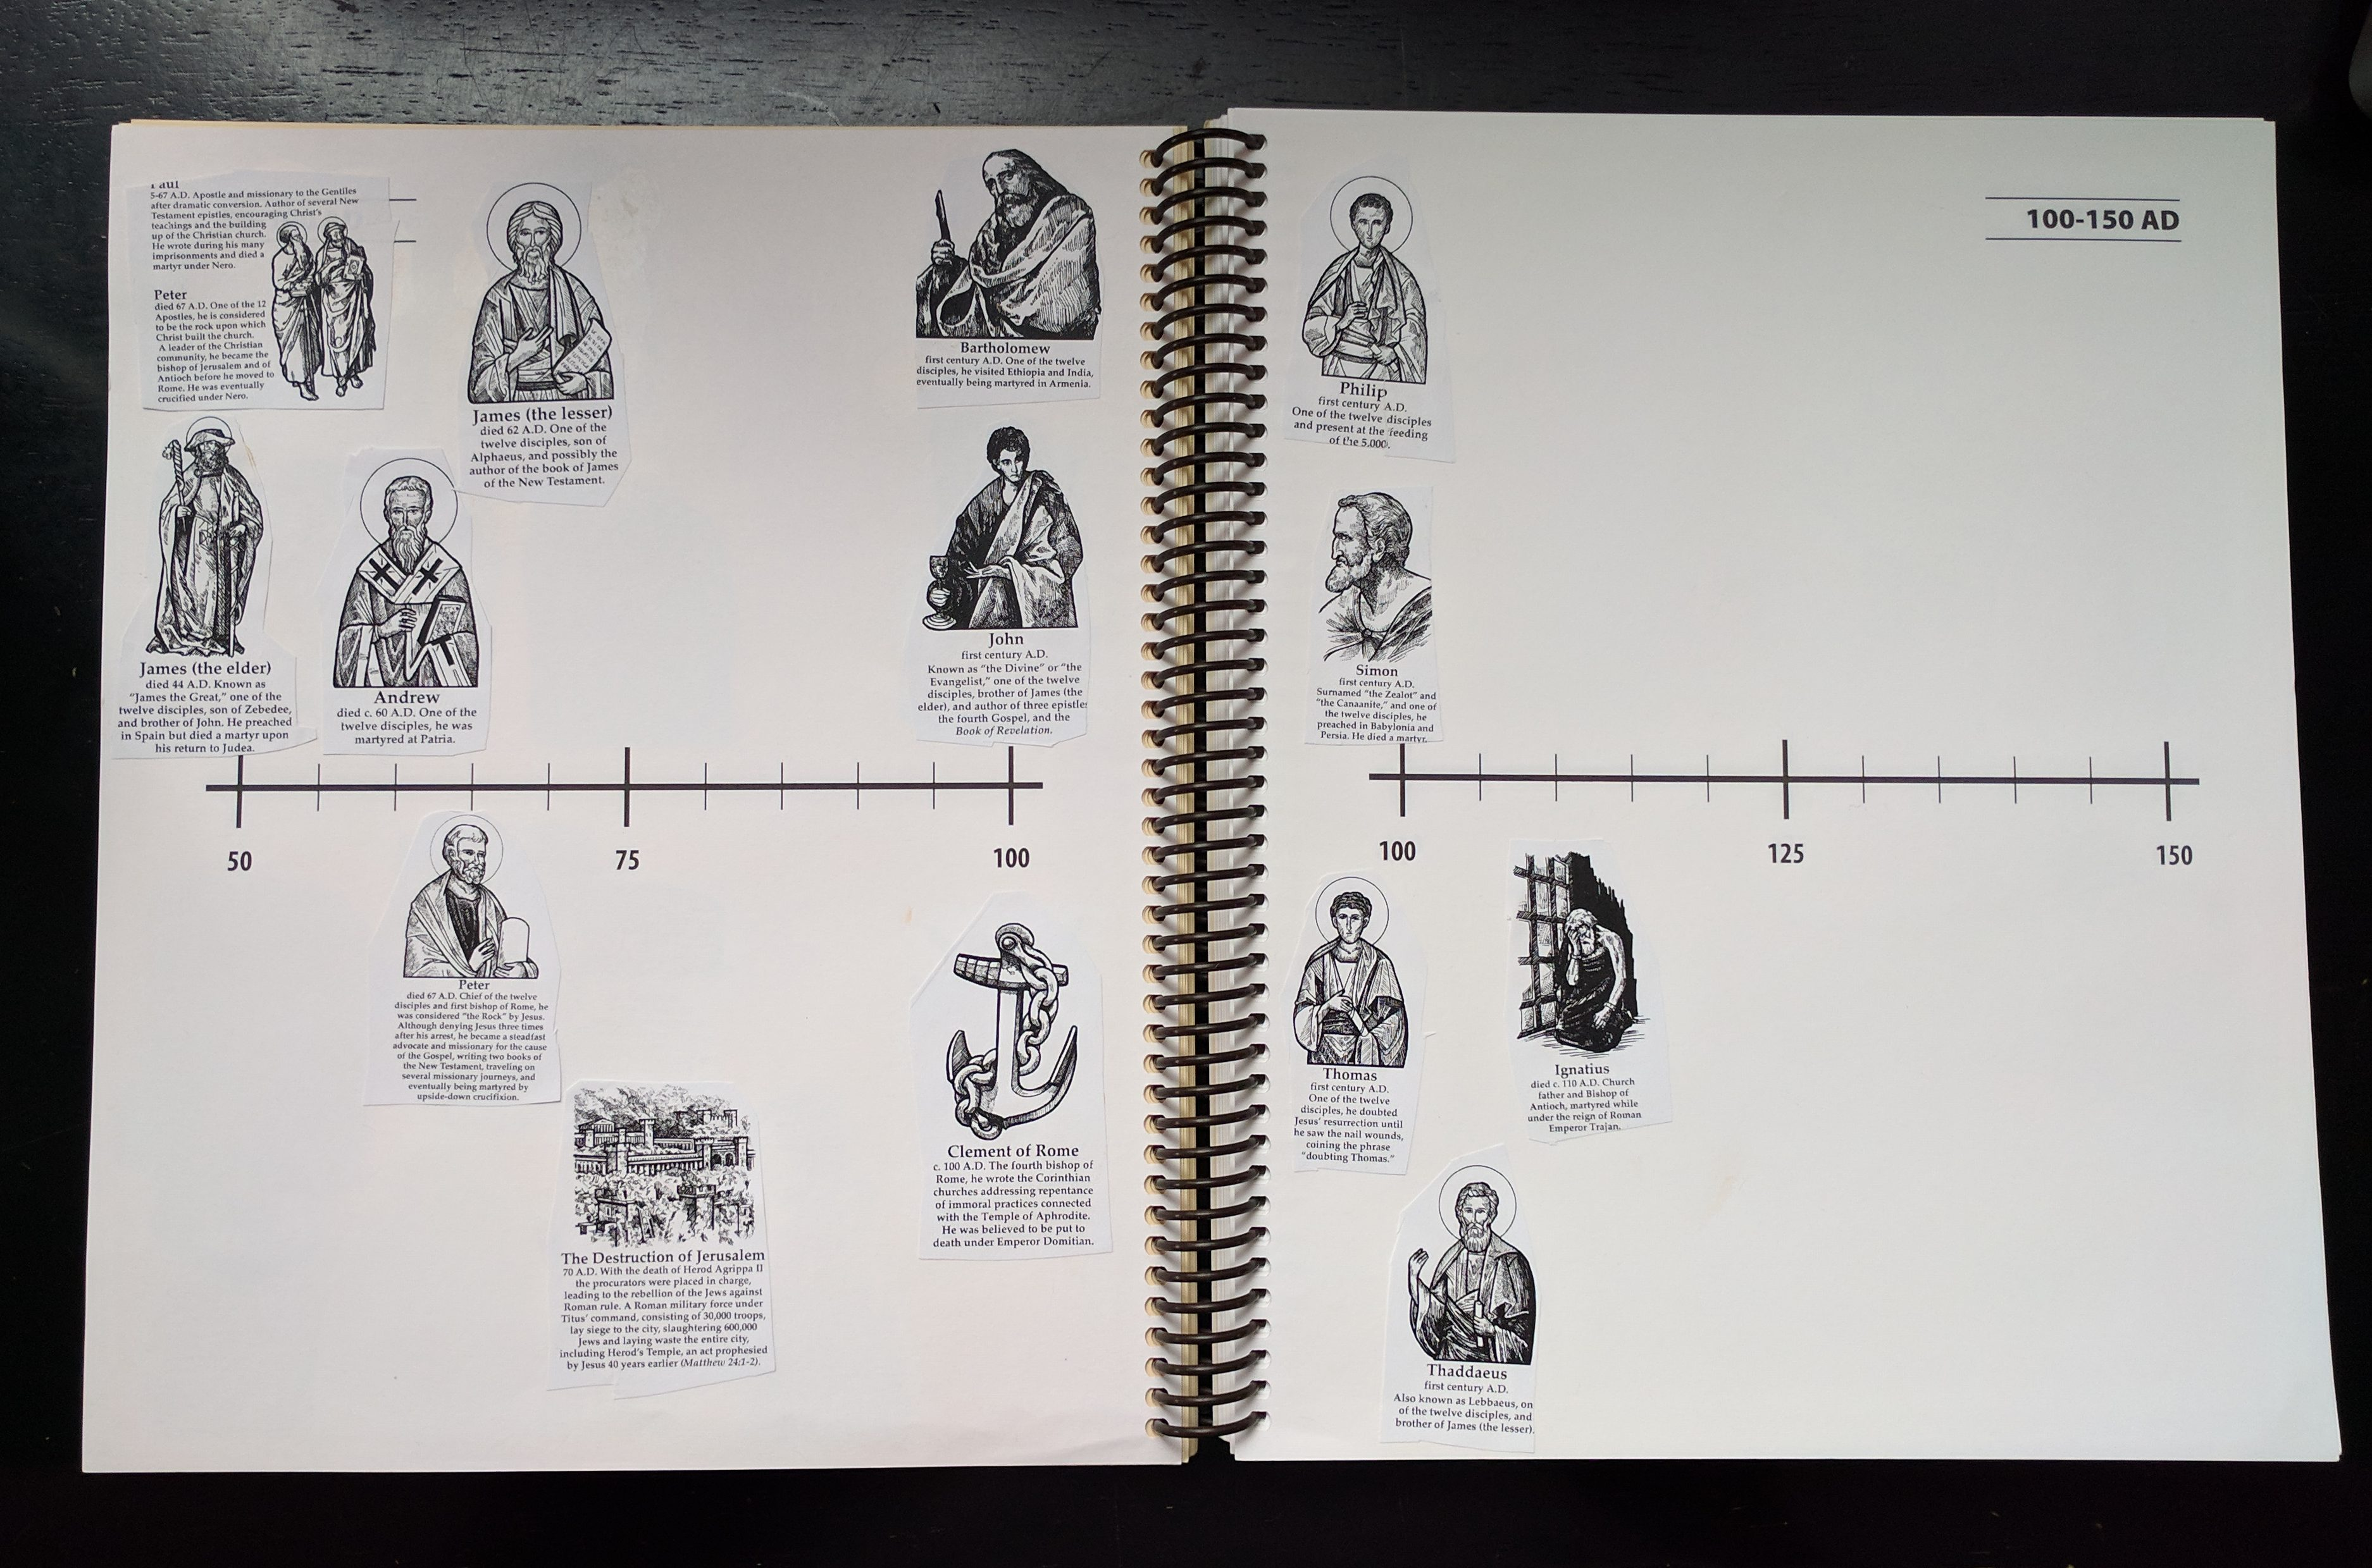 Sonlight Book of Time with Timeline Figures attached